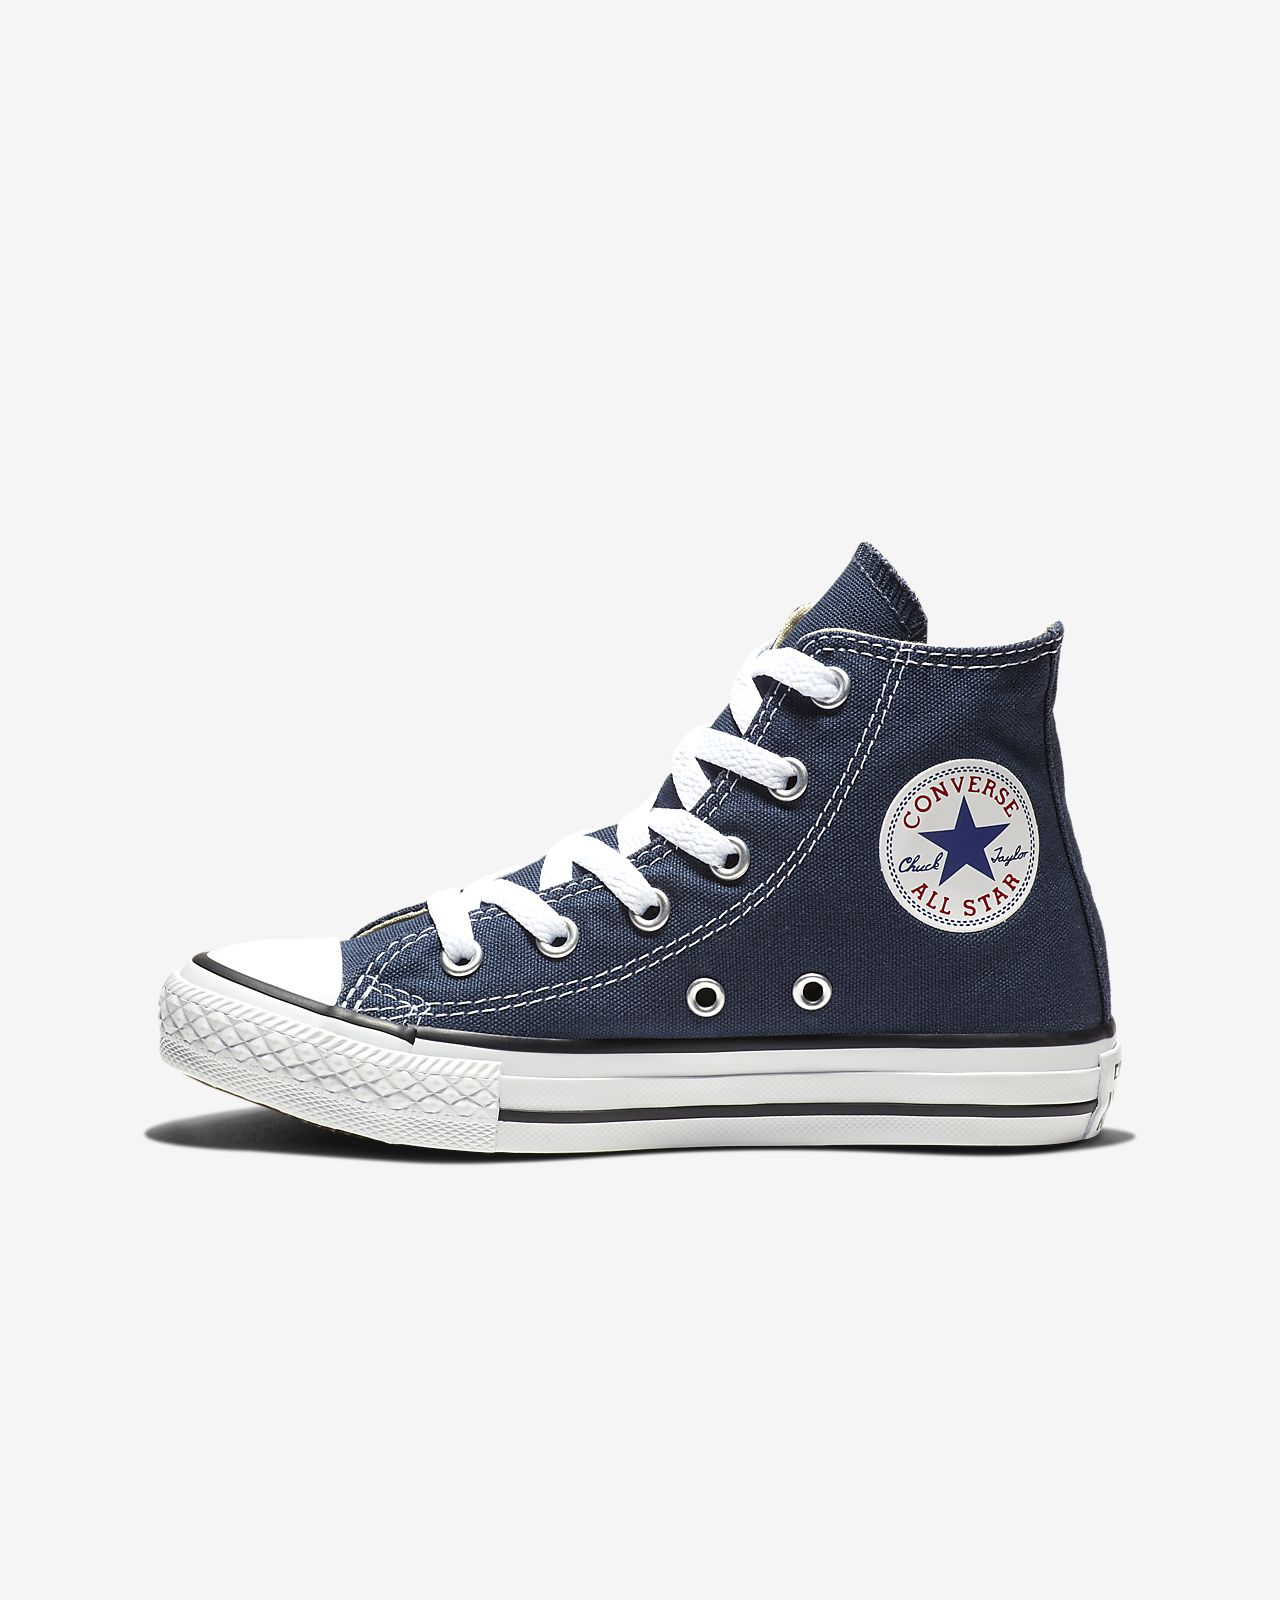 9a2c4ba51657 Converse Chuck Taylor All Star High Top (10.5c-3y) Little Kids  Shoe ...